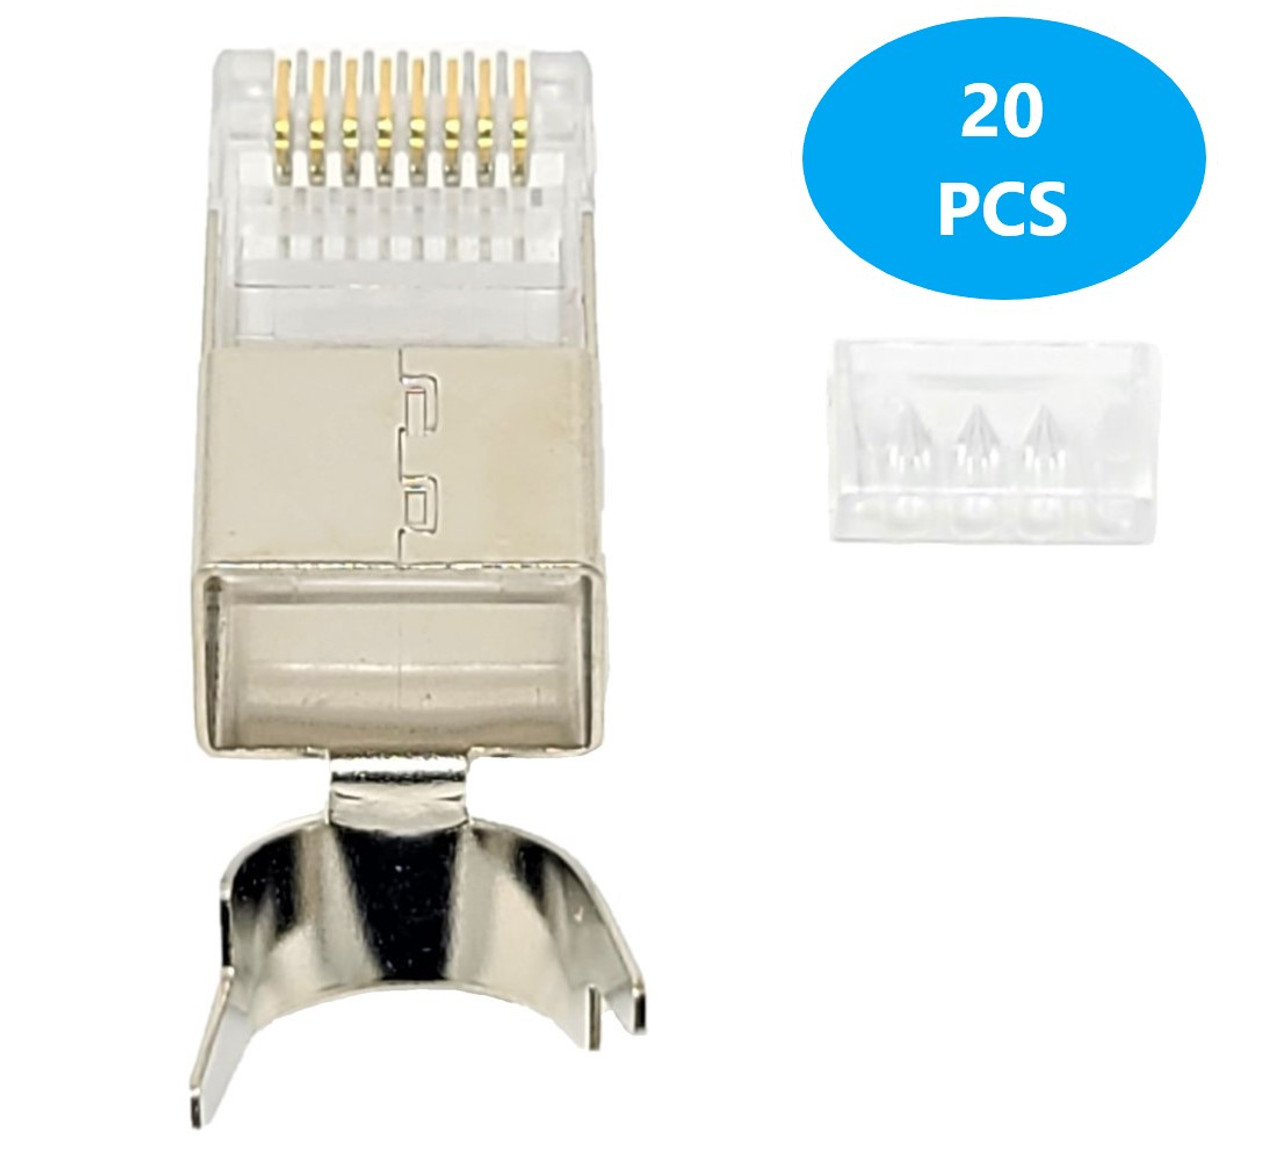 500 Feet Cat6A Solid-Shielded (STP) Bulk Ethernet (23AWG) Cable (Gray) with 20 cat6A/7 Connectors